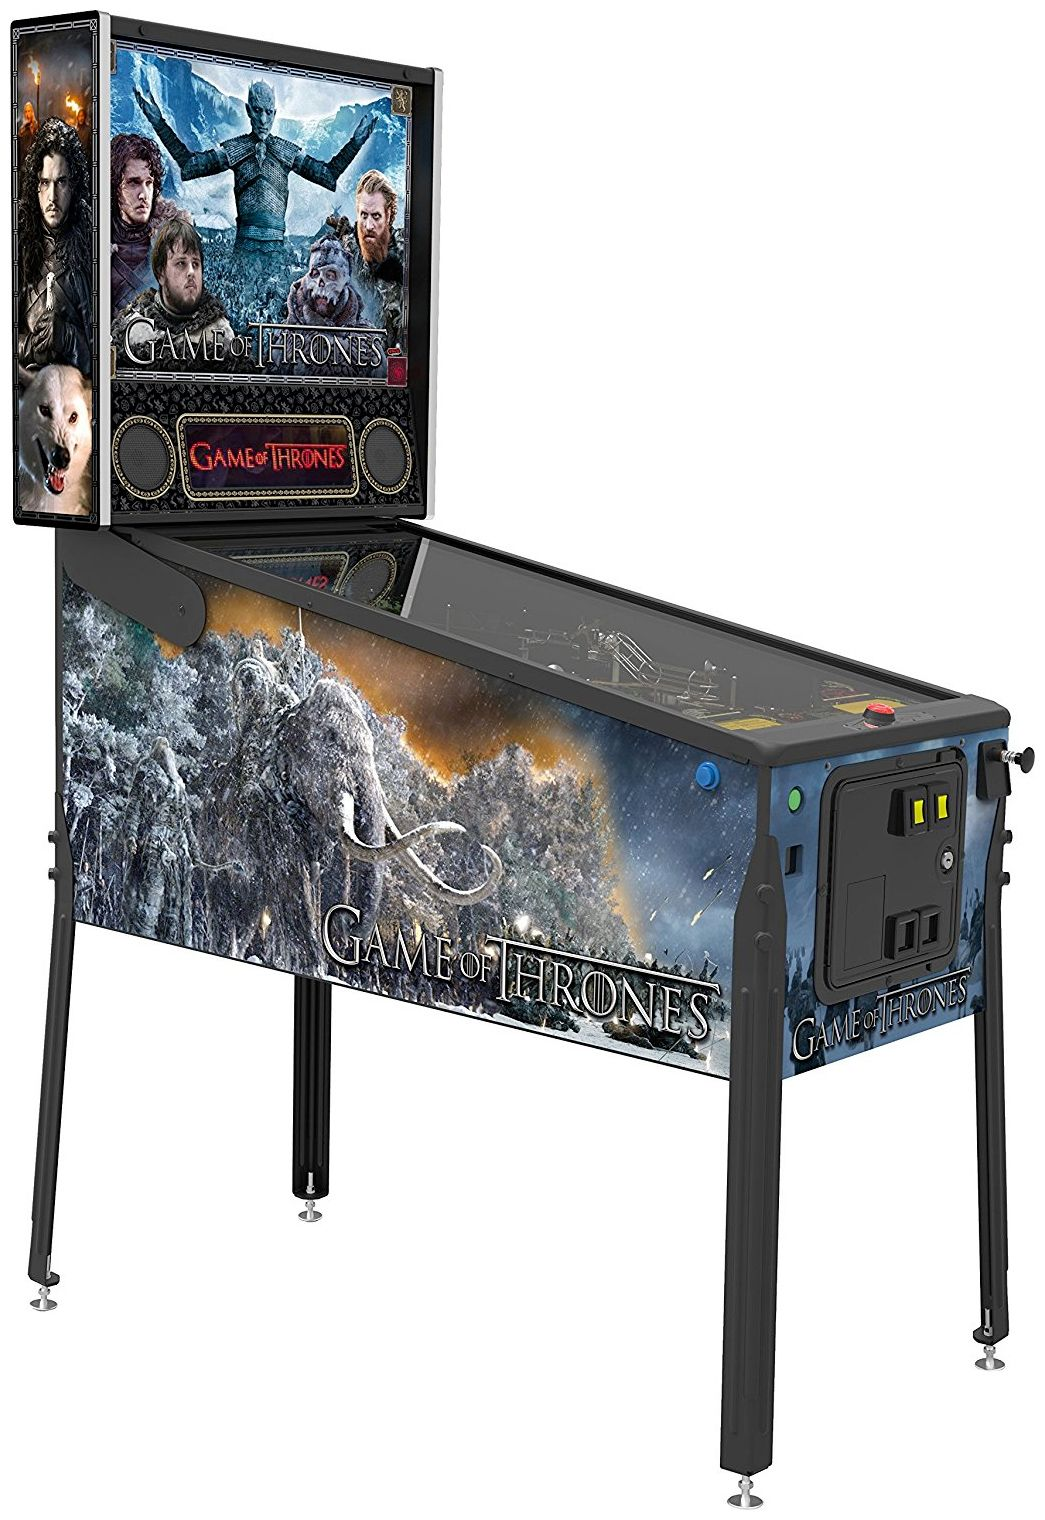 Game-of-Thrones-Pinball-Premium-Arcade-Pinball-Machine-02